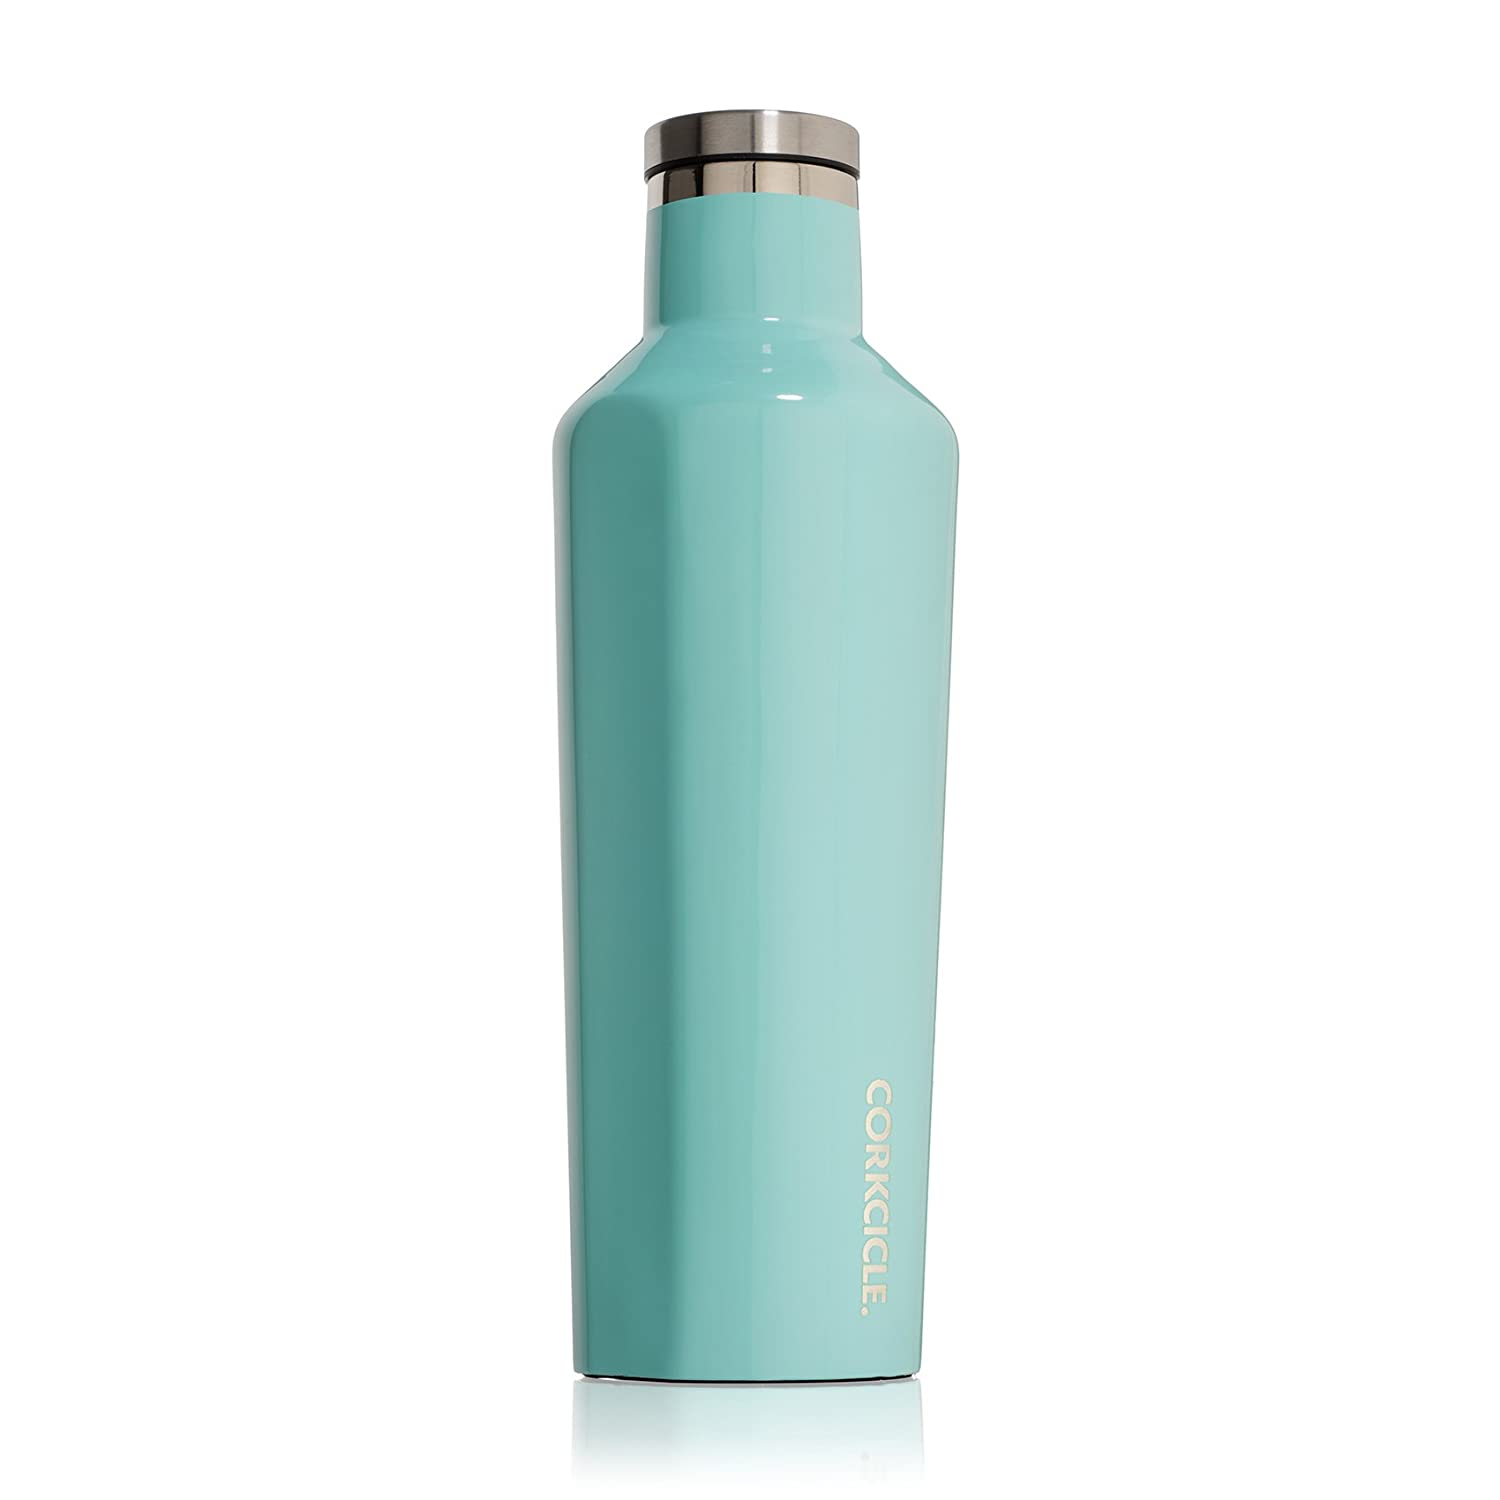 Corkcicle Canteen Classic Collection-Water Bottle & Thermos-Triple Insulated Shatterproof Stainless Steel, 9 oz, Brushed Steel C2009BS